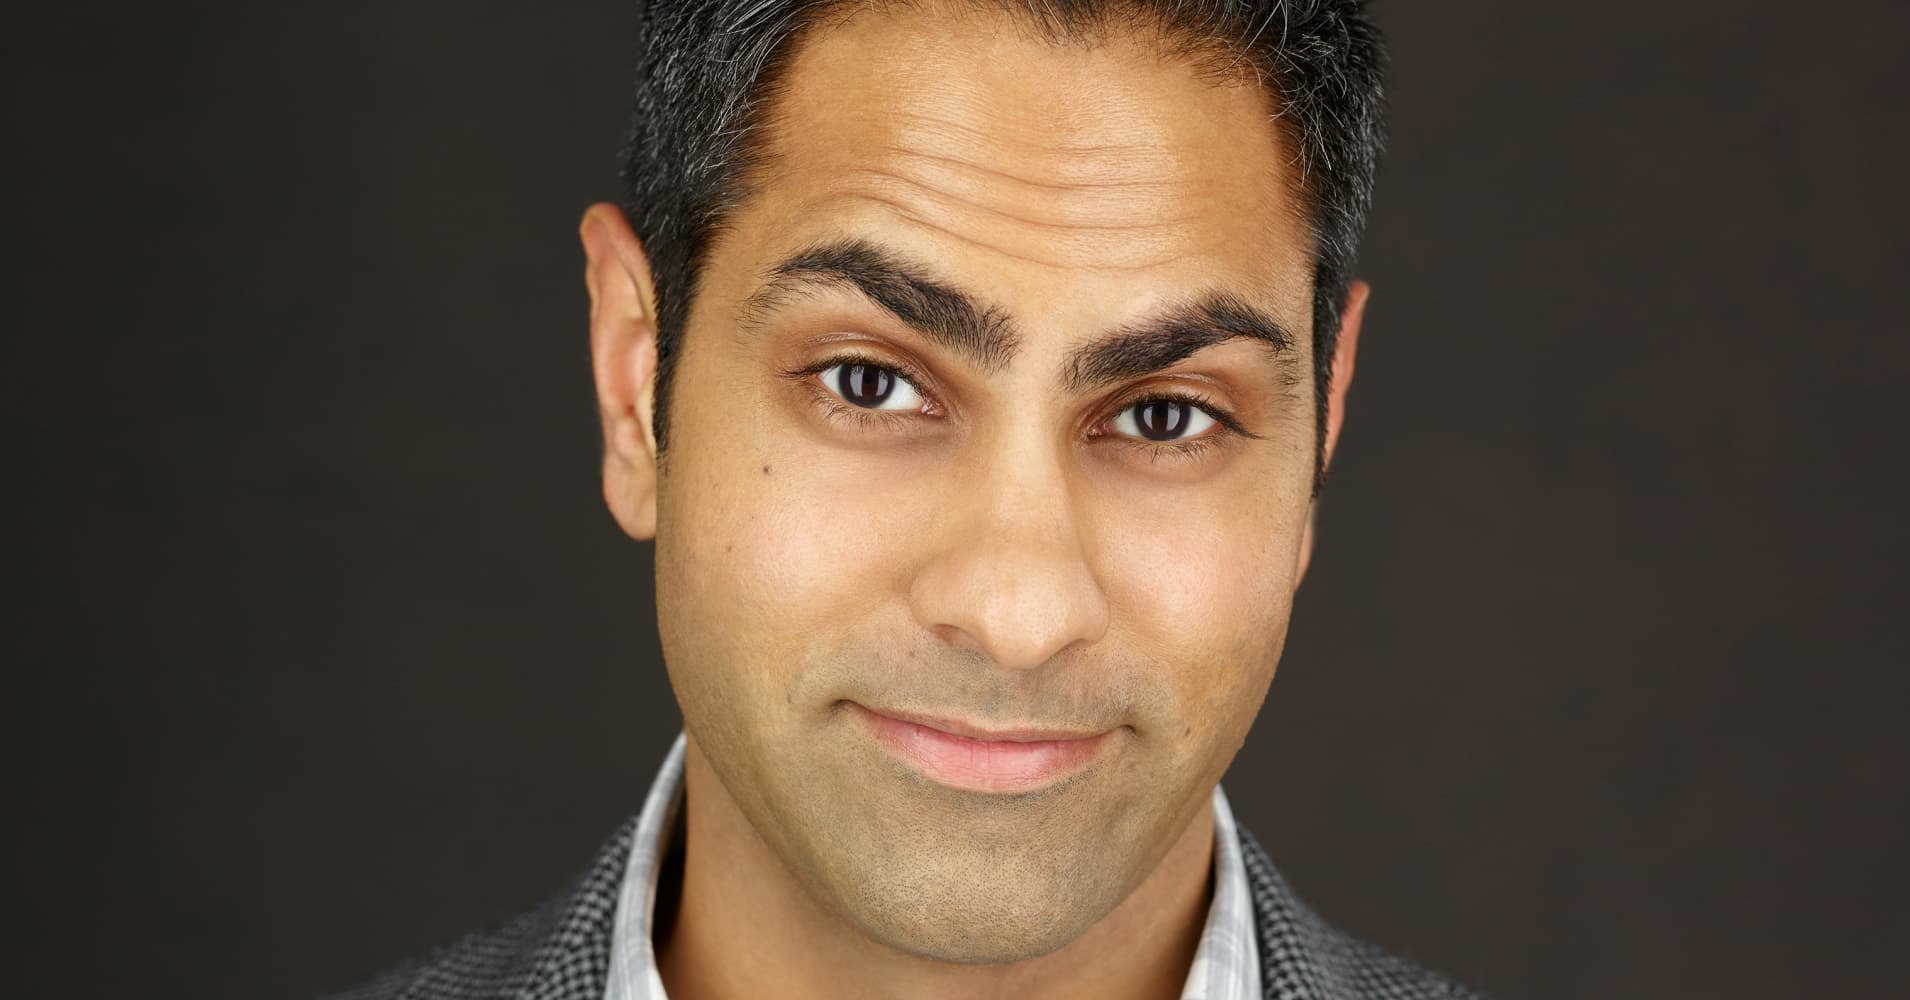 Self-made millionaire Ramit Sethi uses these 3 credit card hacks to save time and money